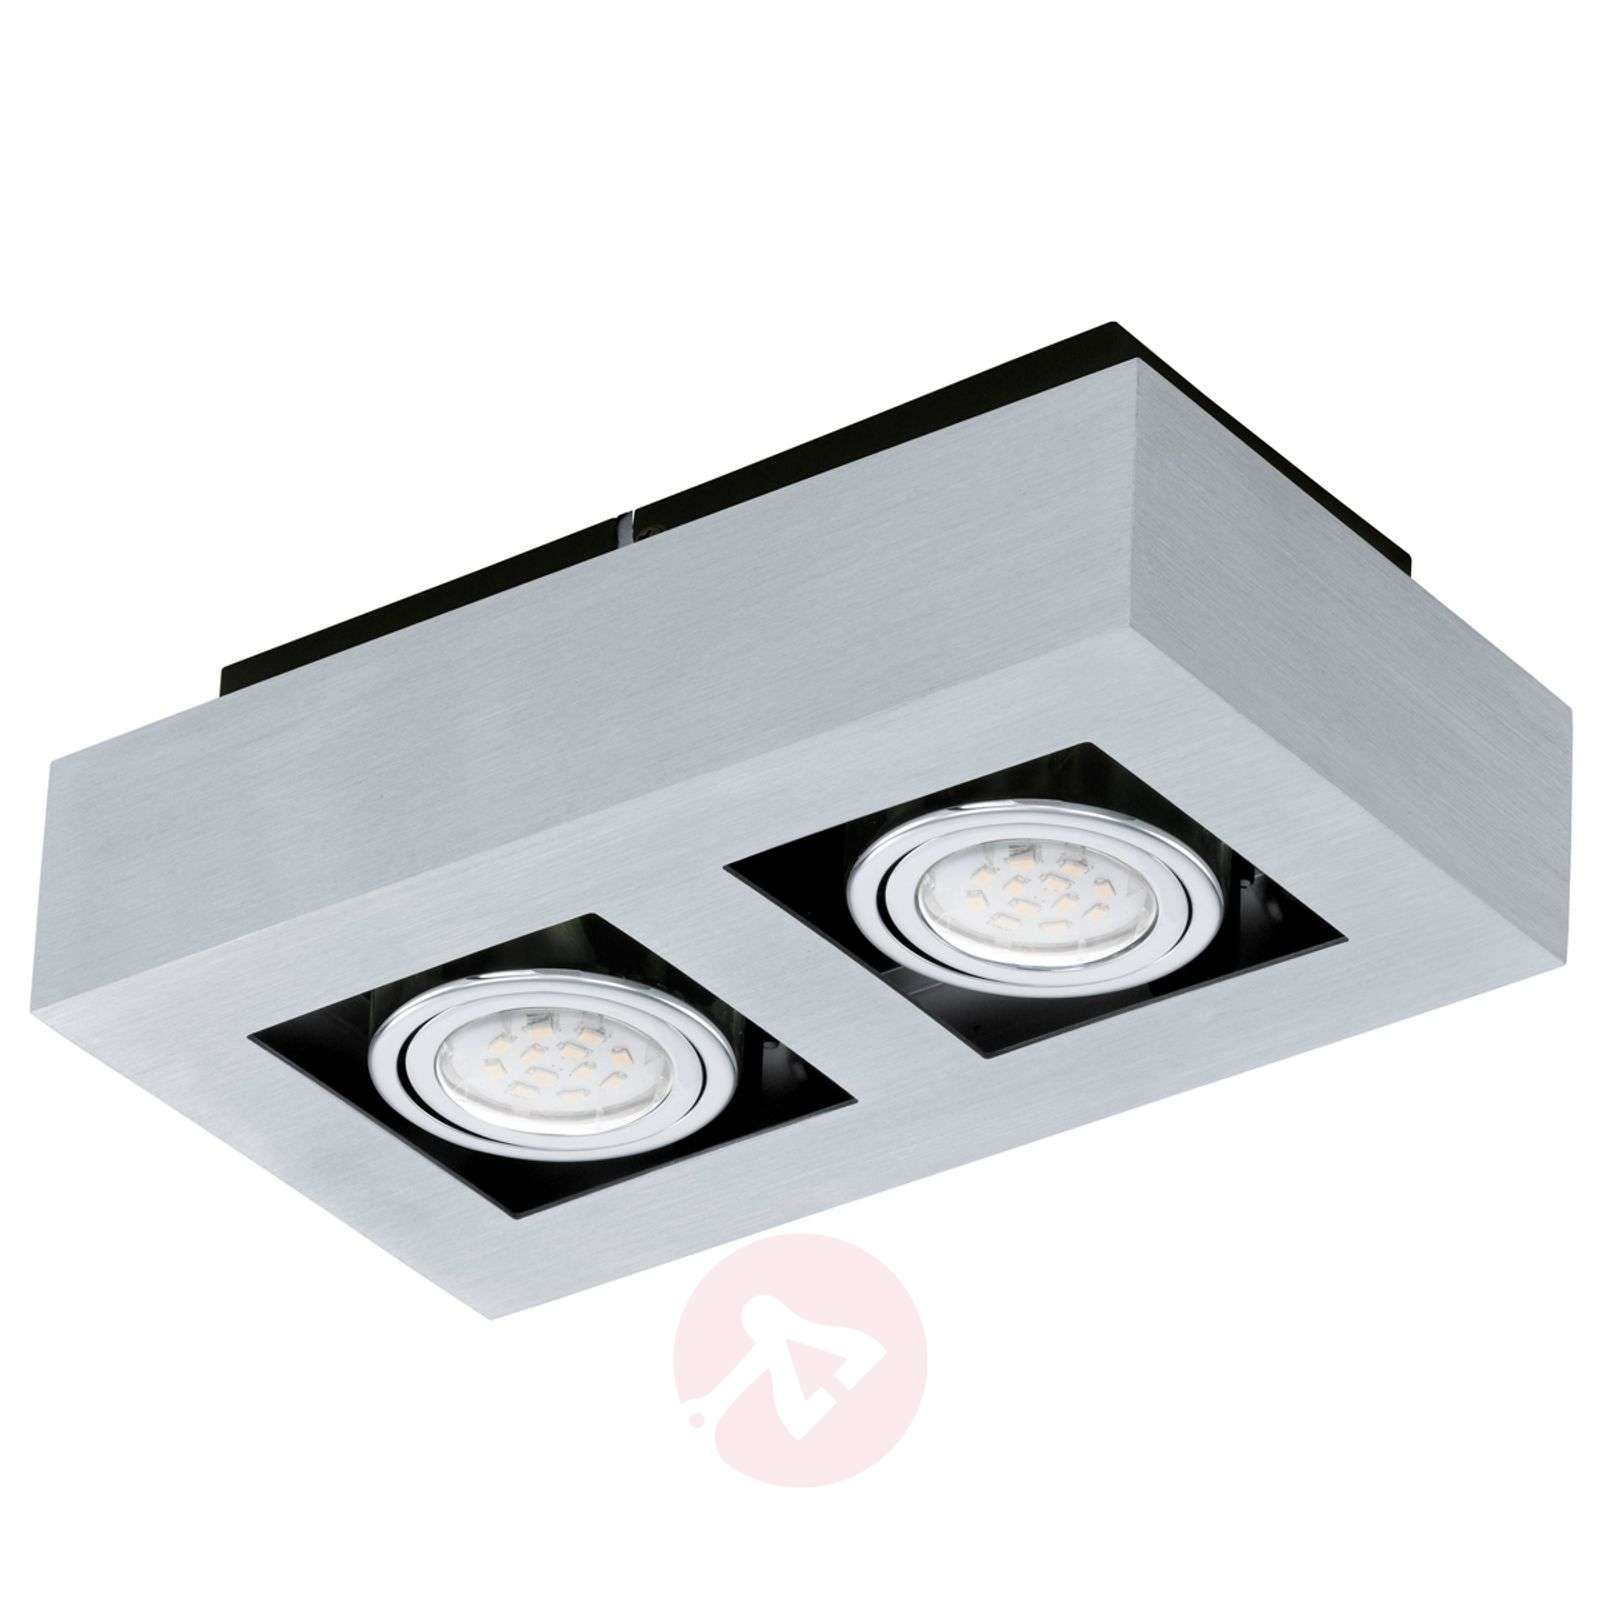 Plafoniera LED Loke a due luci-3031152-01